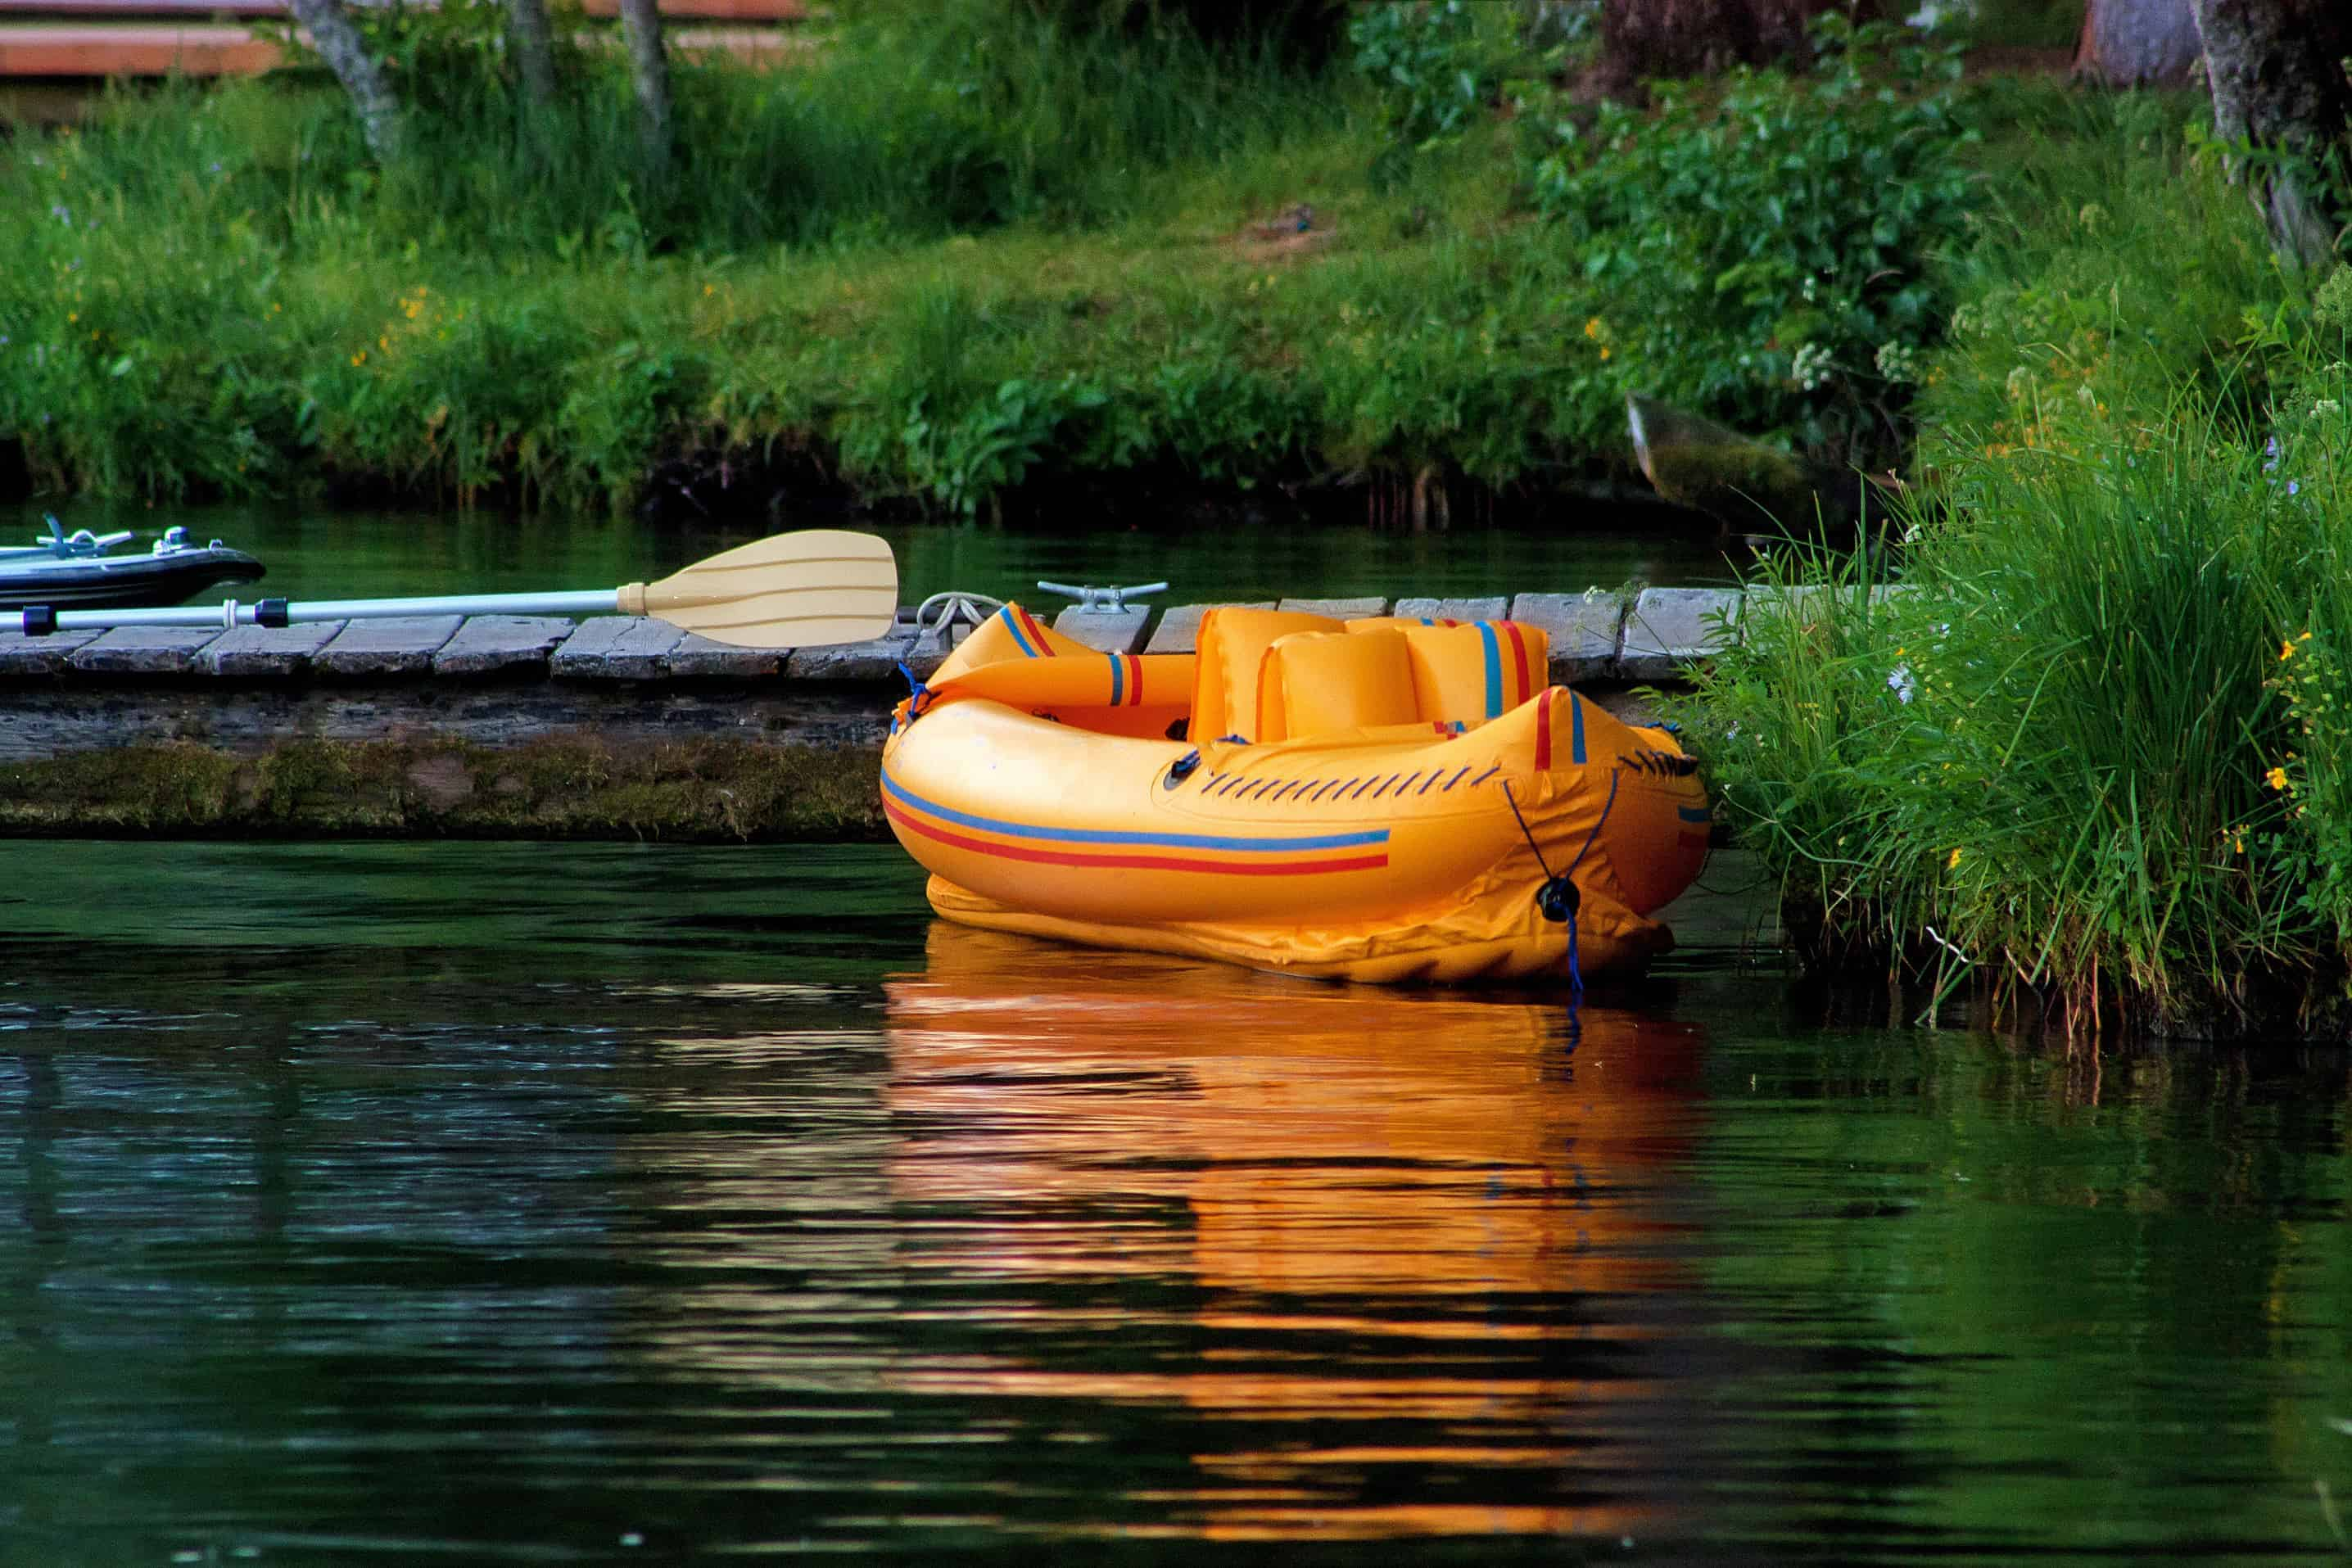 5 Reasons to Buy an Inflatable Boat